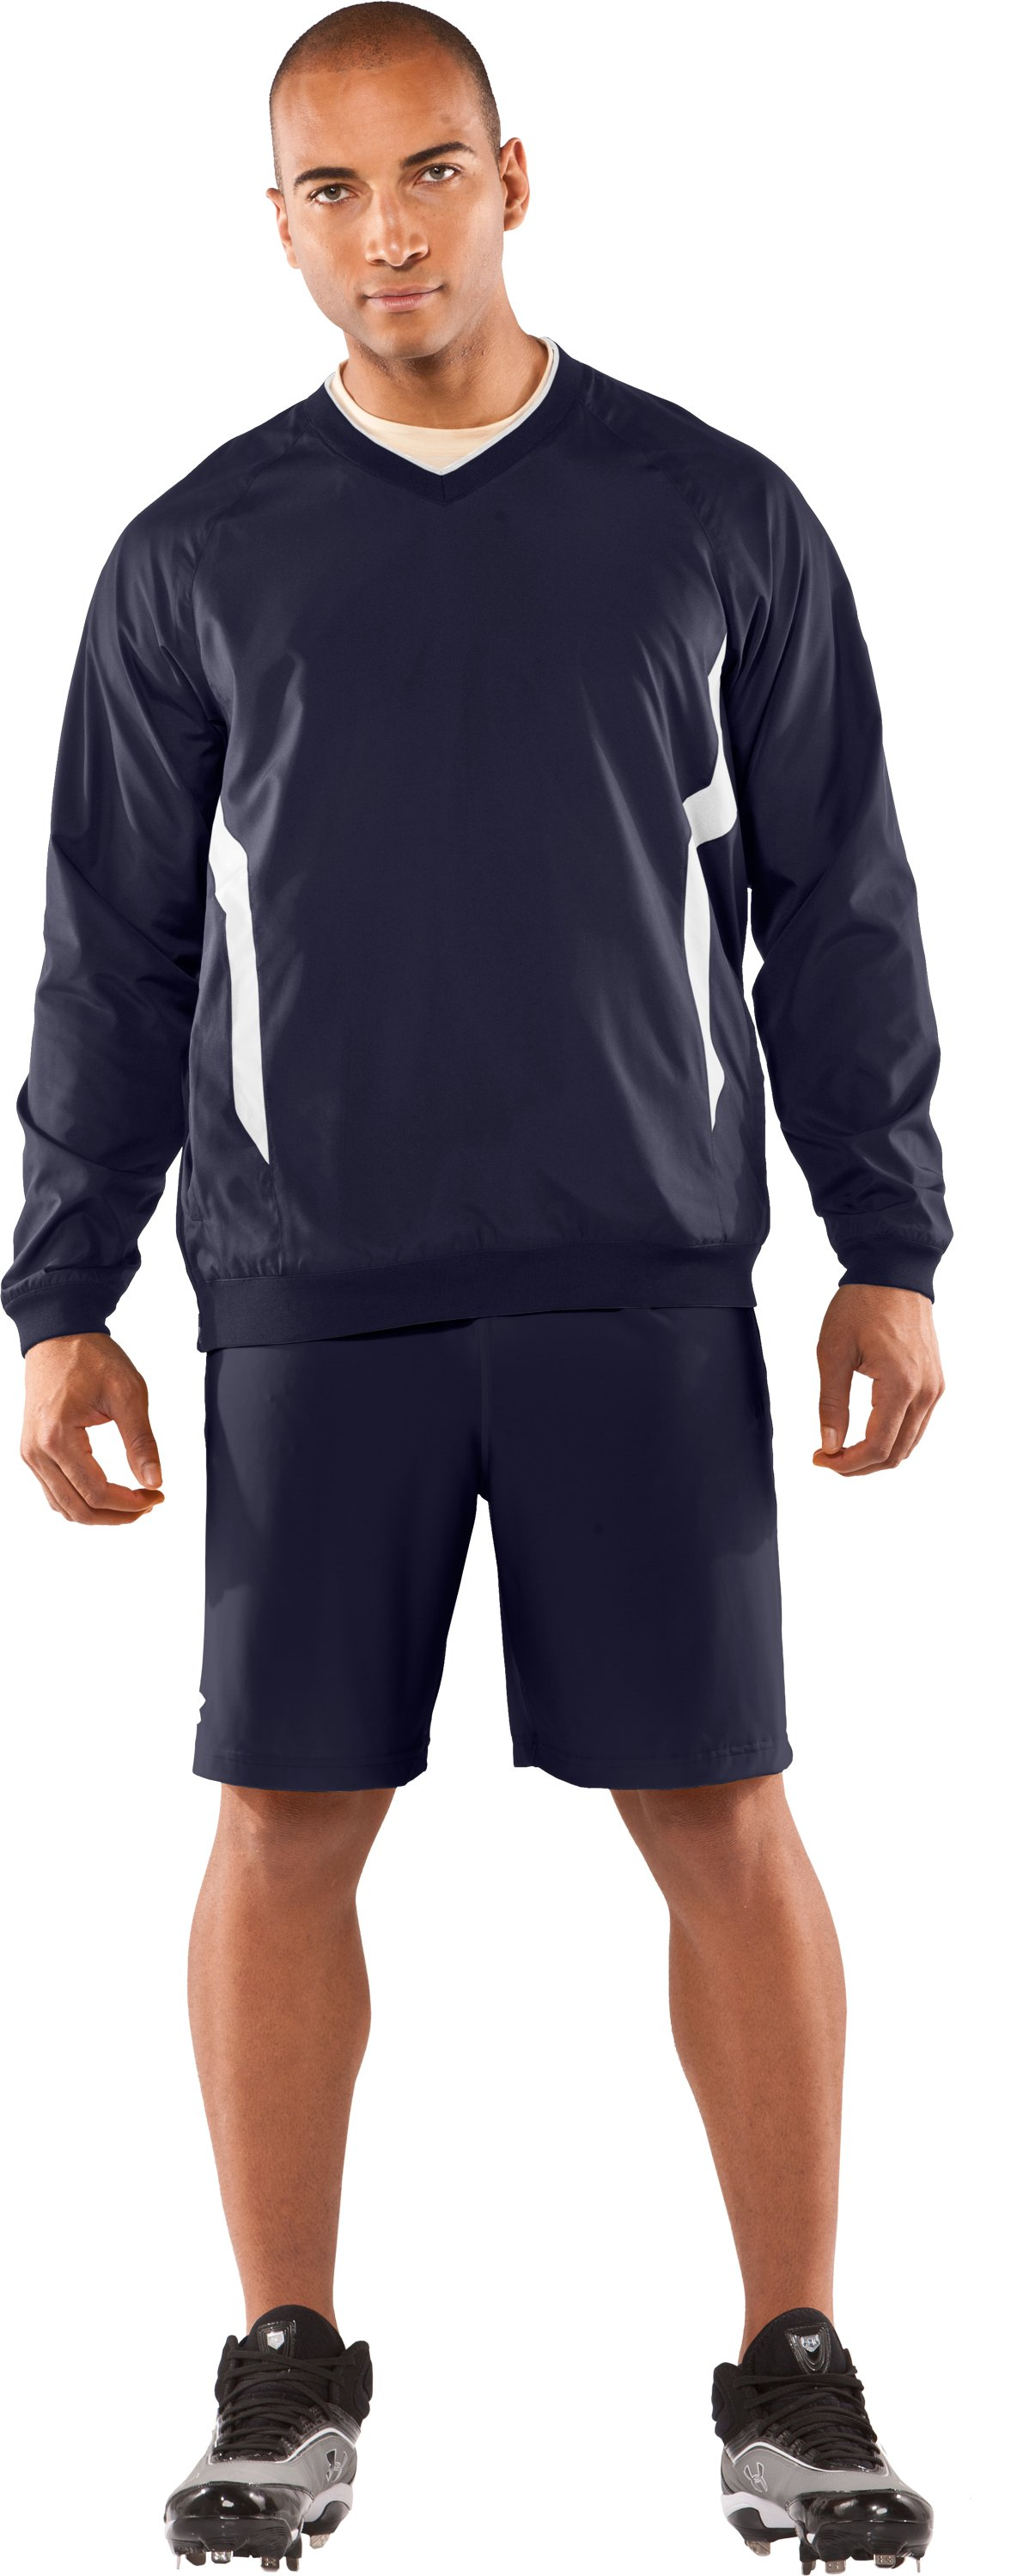 Men's Gamer V-Neck AllSeasonGear® Jacket, Midnight Navy, Front